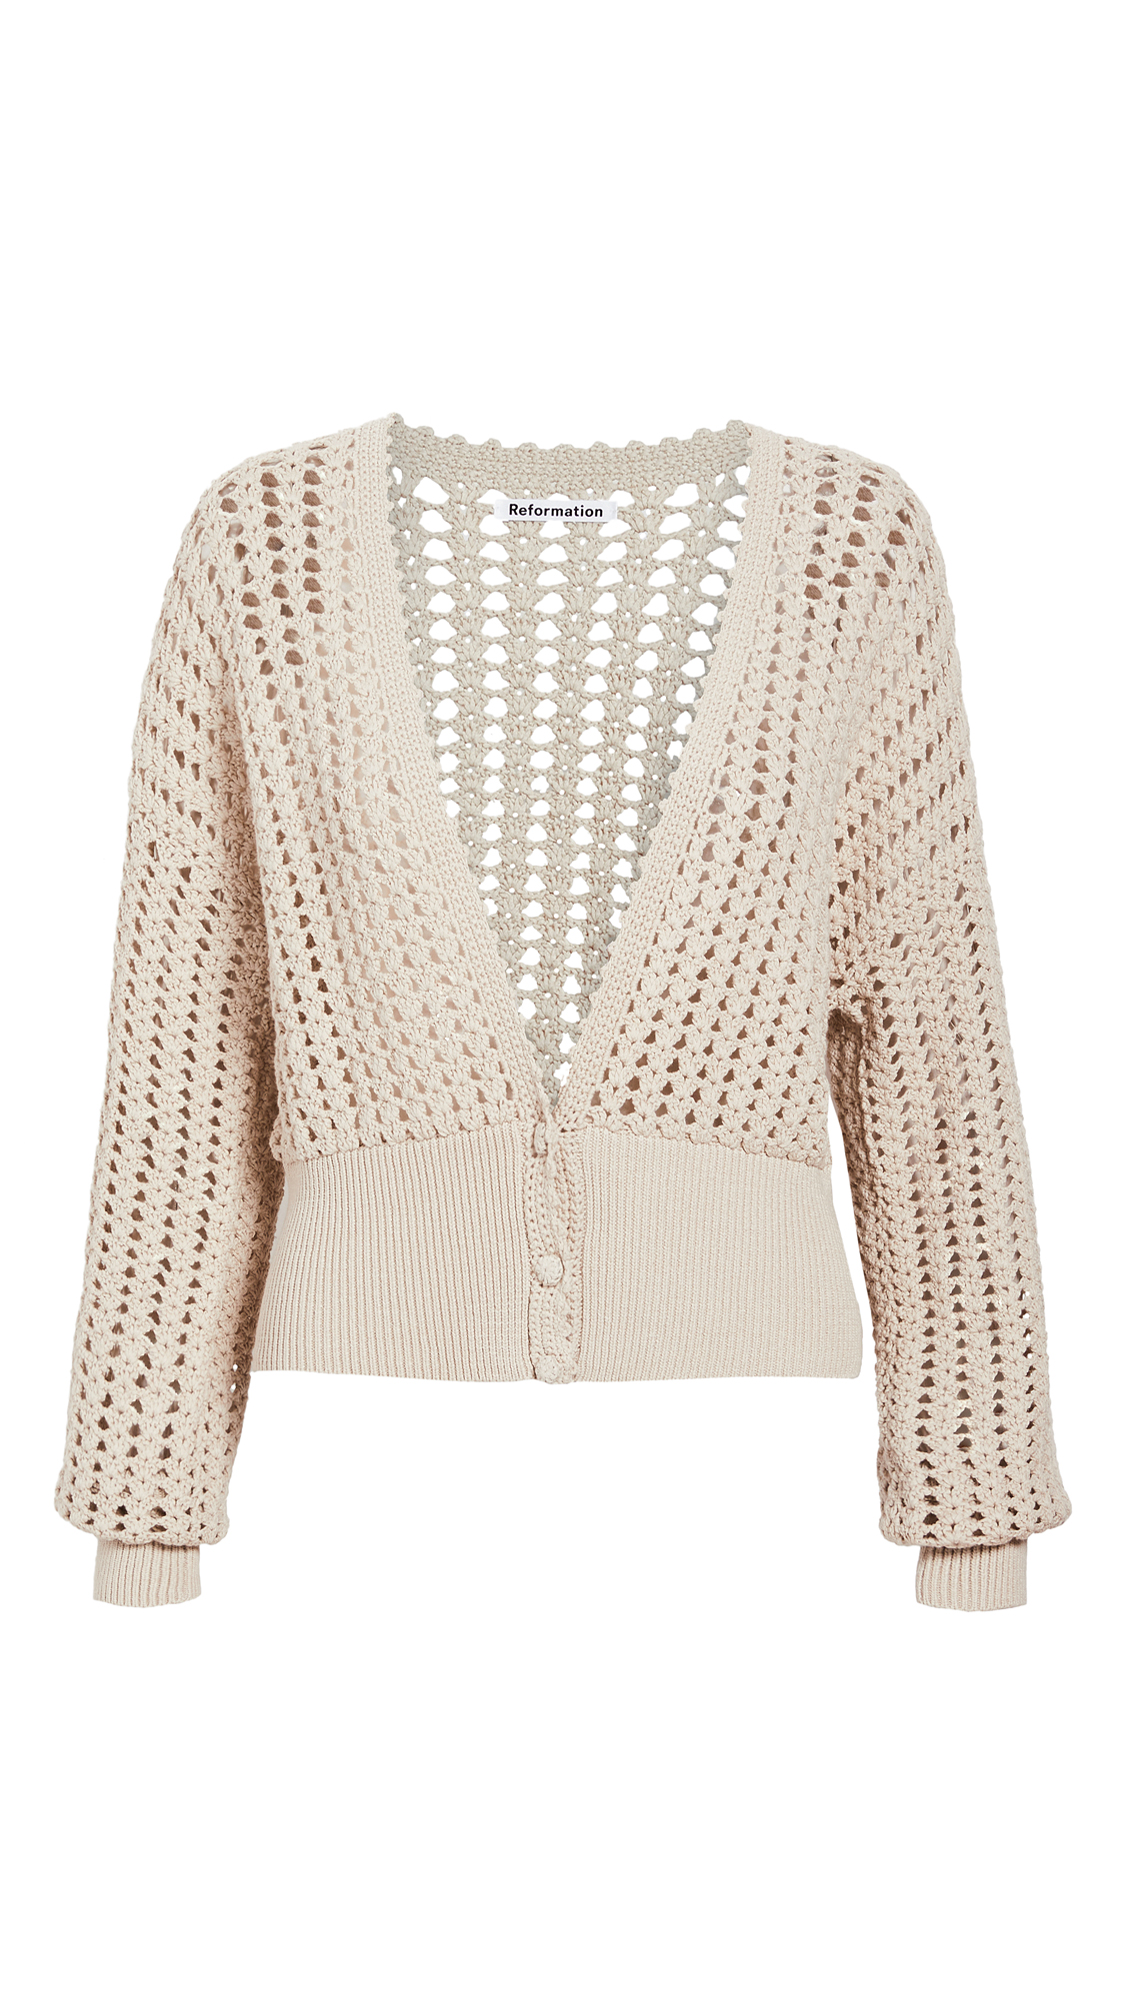 Reformation Erin Sweater